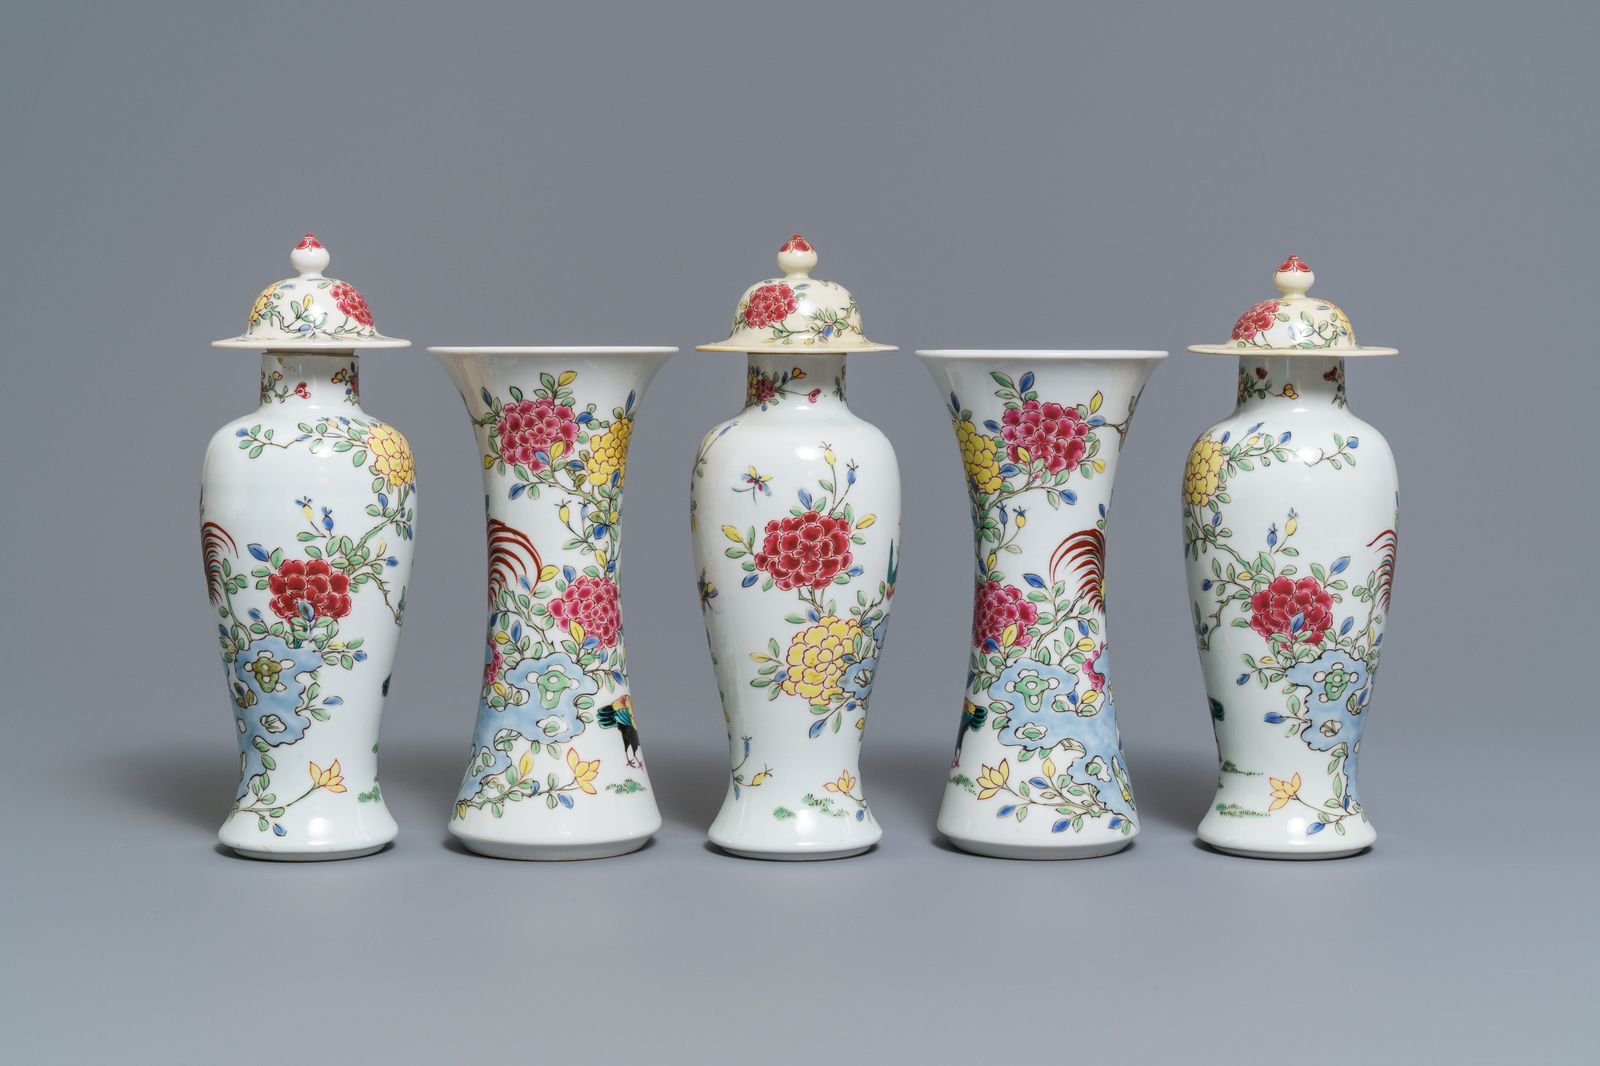 Lot 50 - A famille rose-style five-piece garniture with roosters and chickens, Samson, Paris, 19th C.